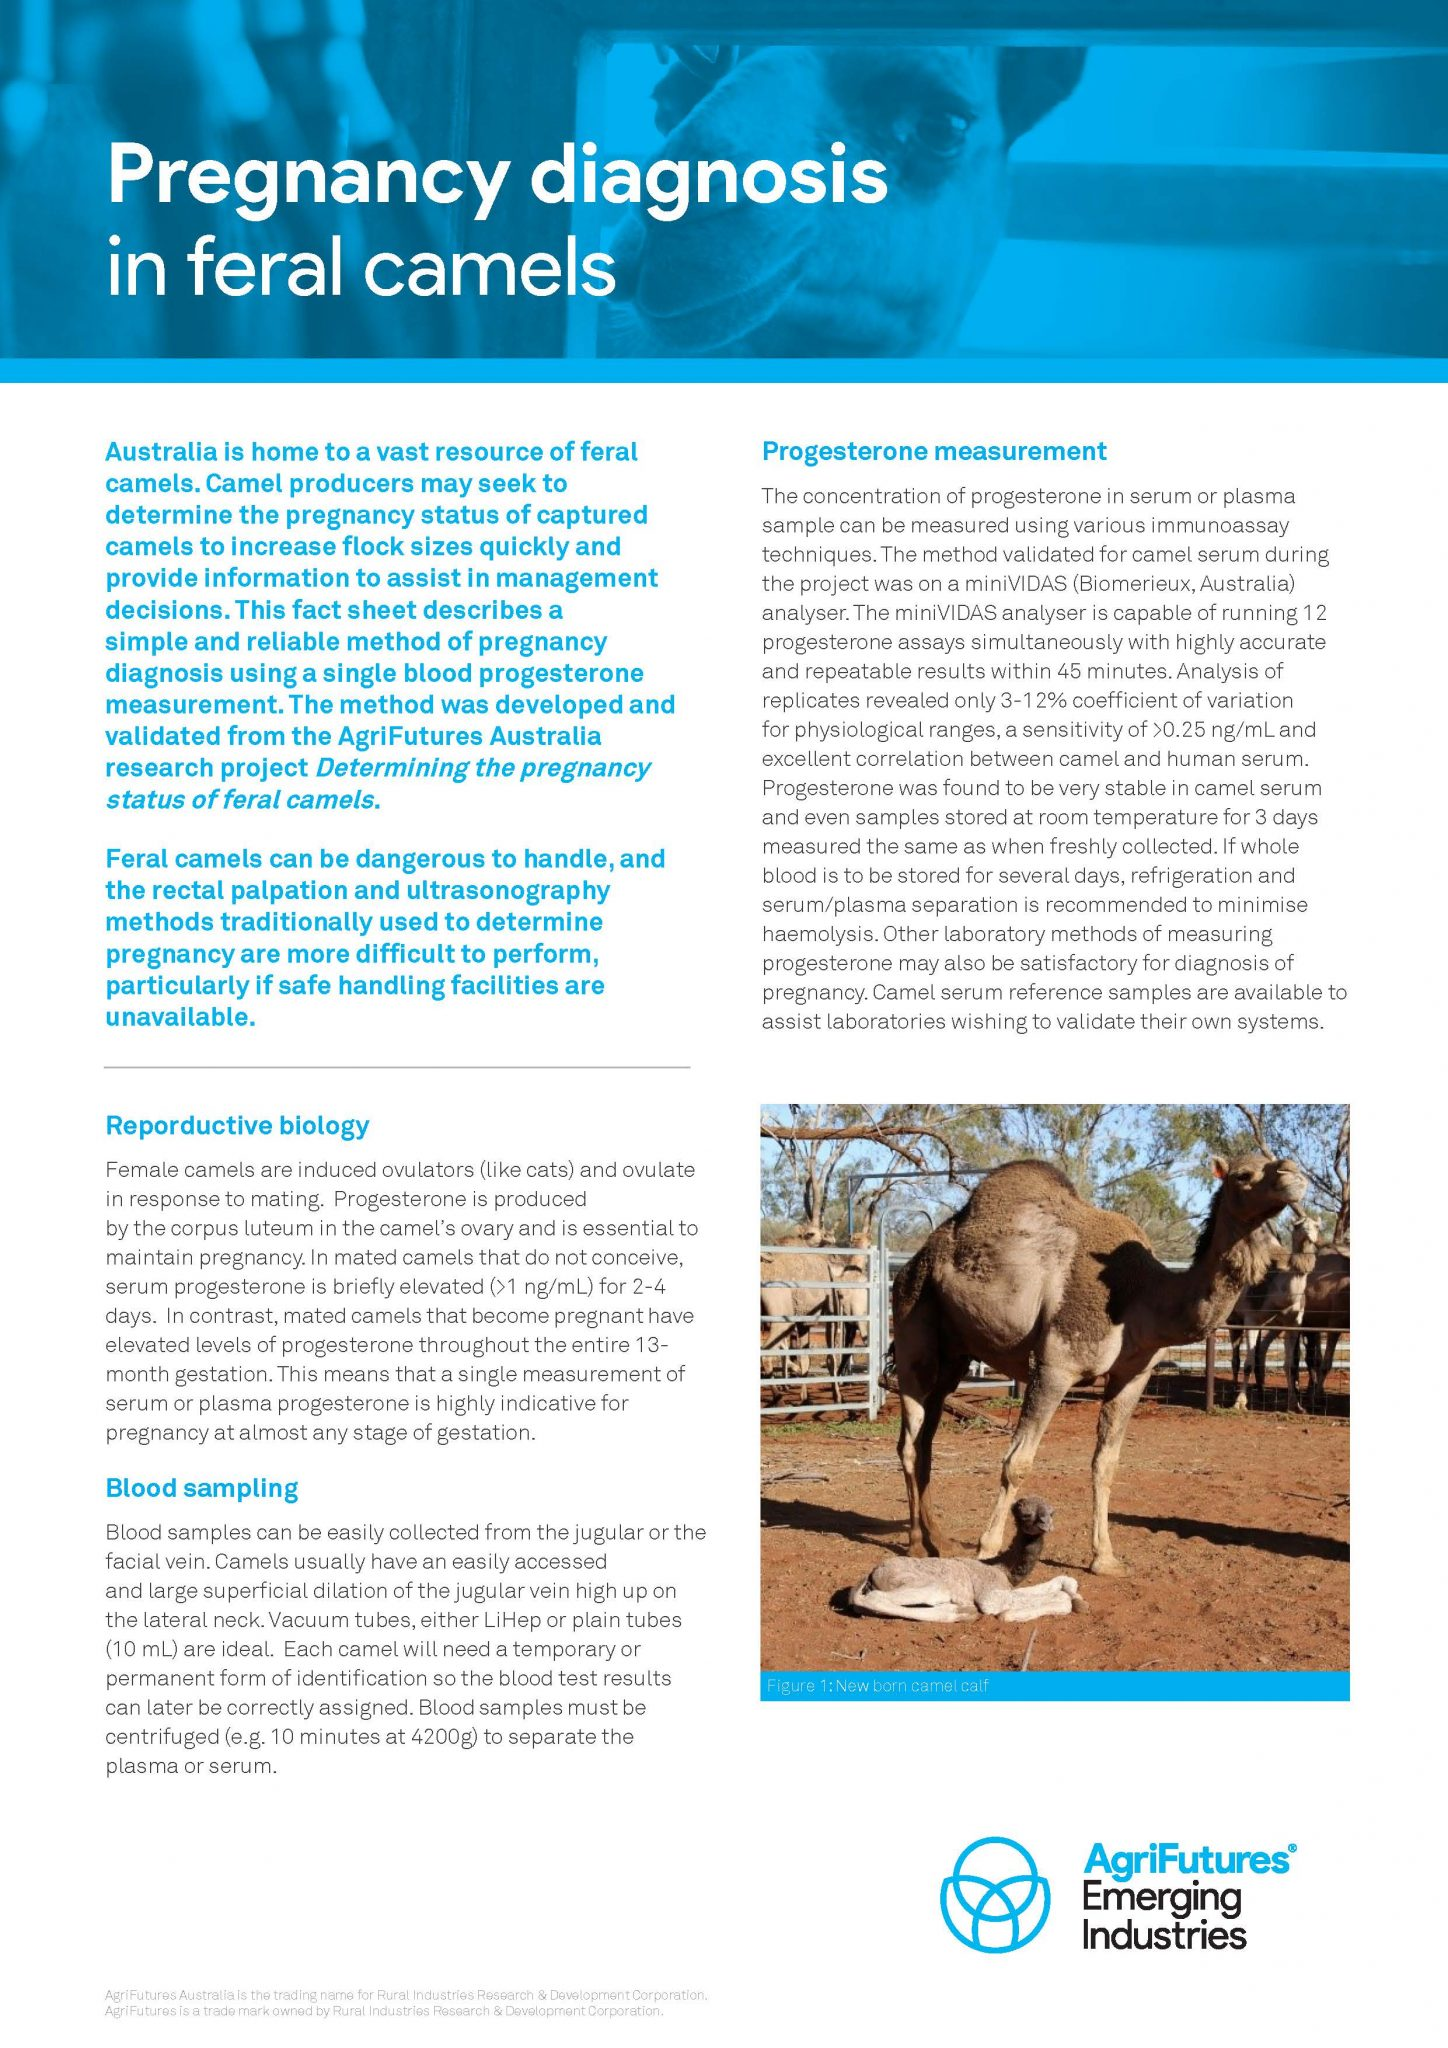 Fact sheet: Determining the pregnancy status of feral camels - image